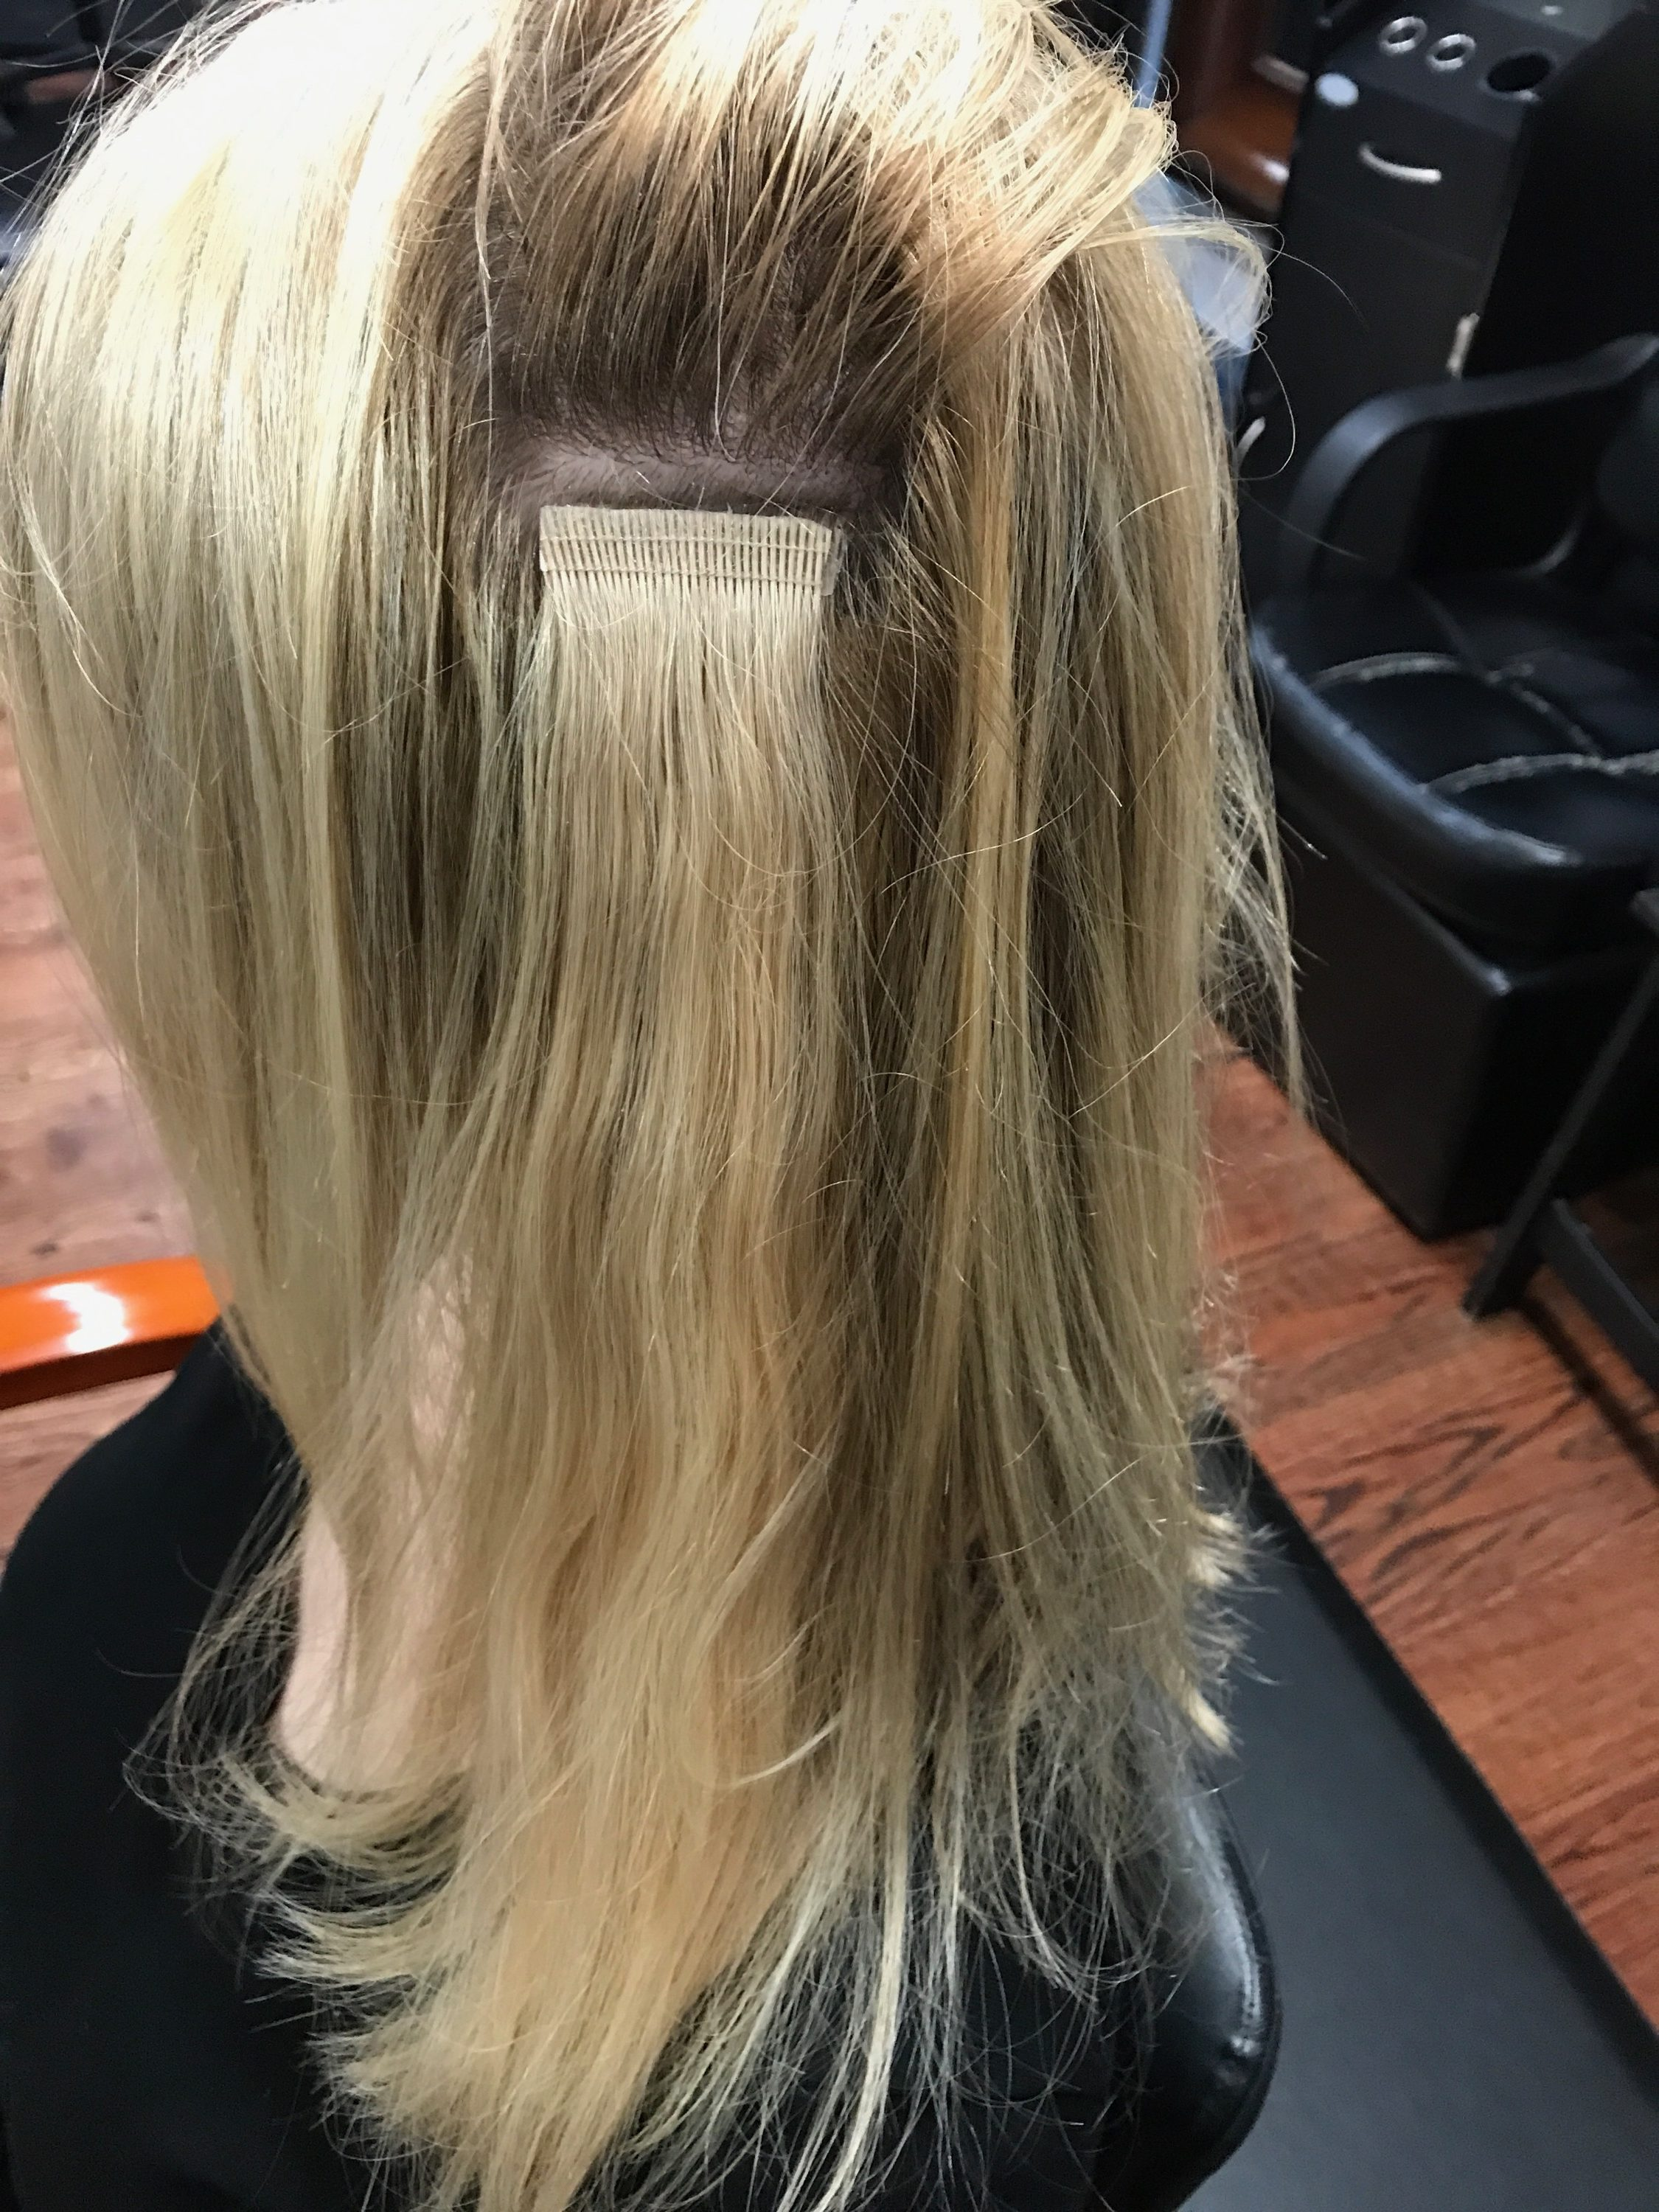 Postpartum hair loss everything you need to know about tape in how long do tape in extensions last pmusecretfo Choice Image